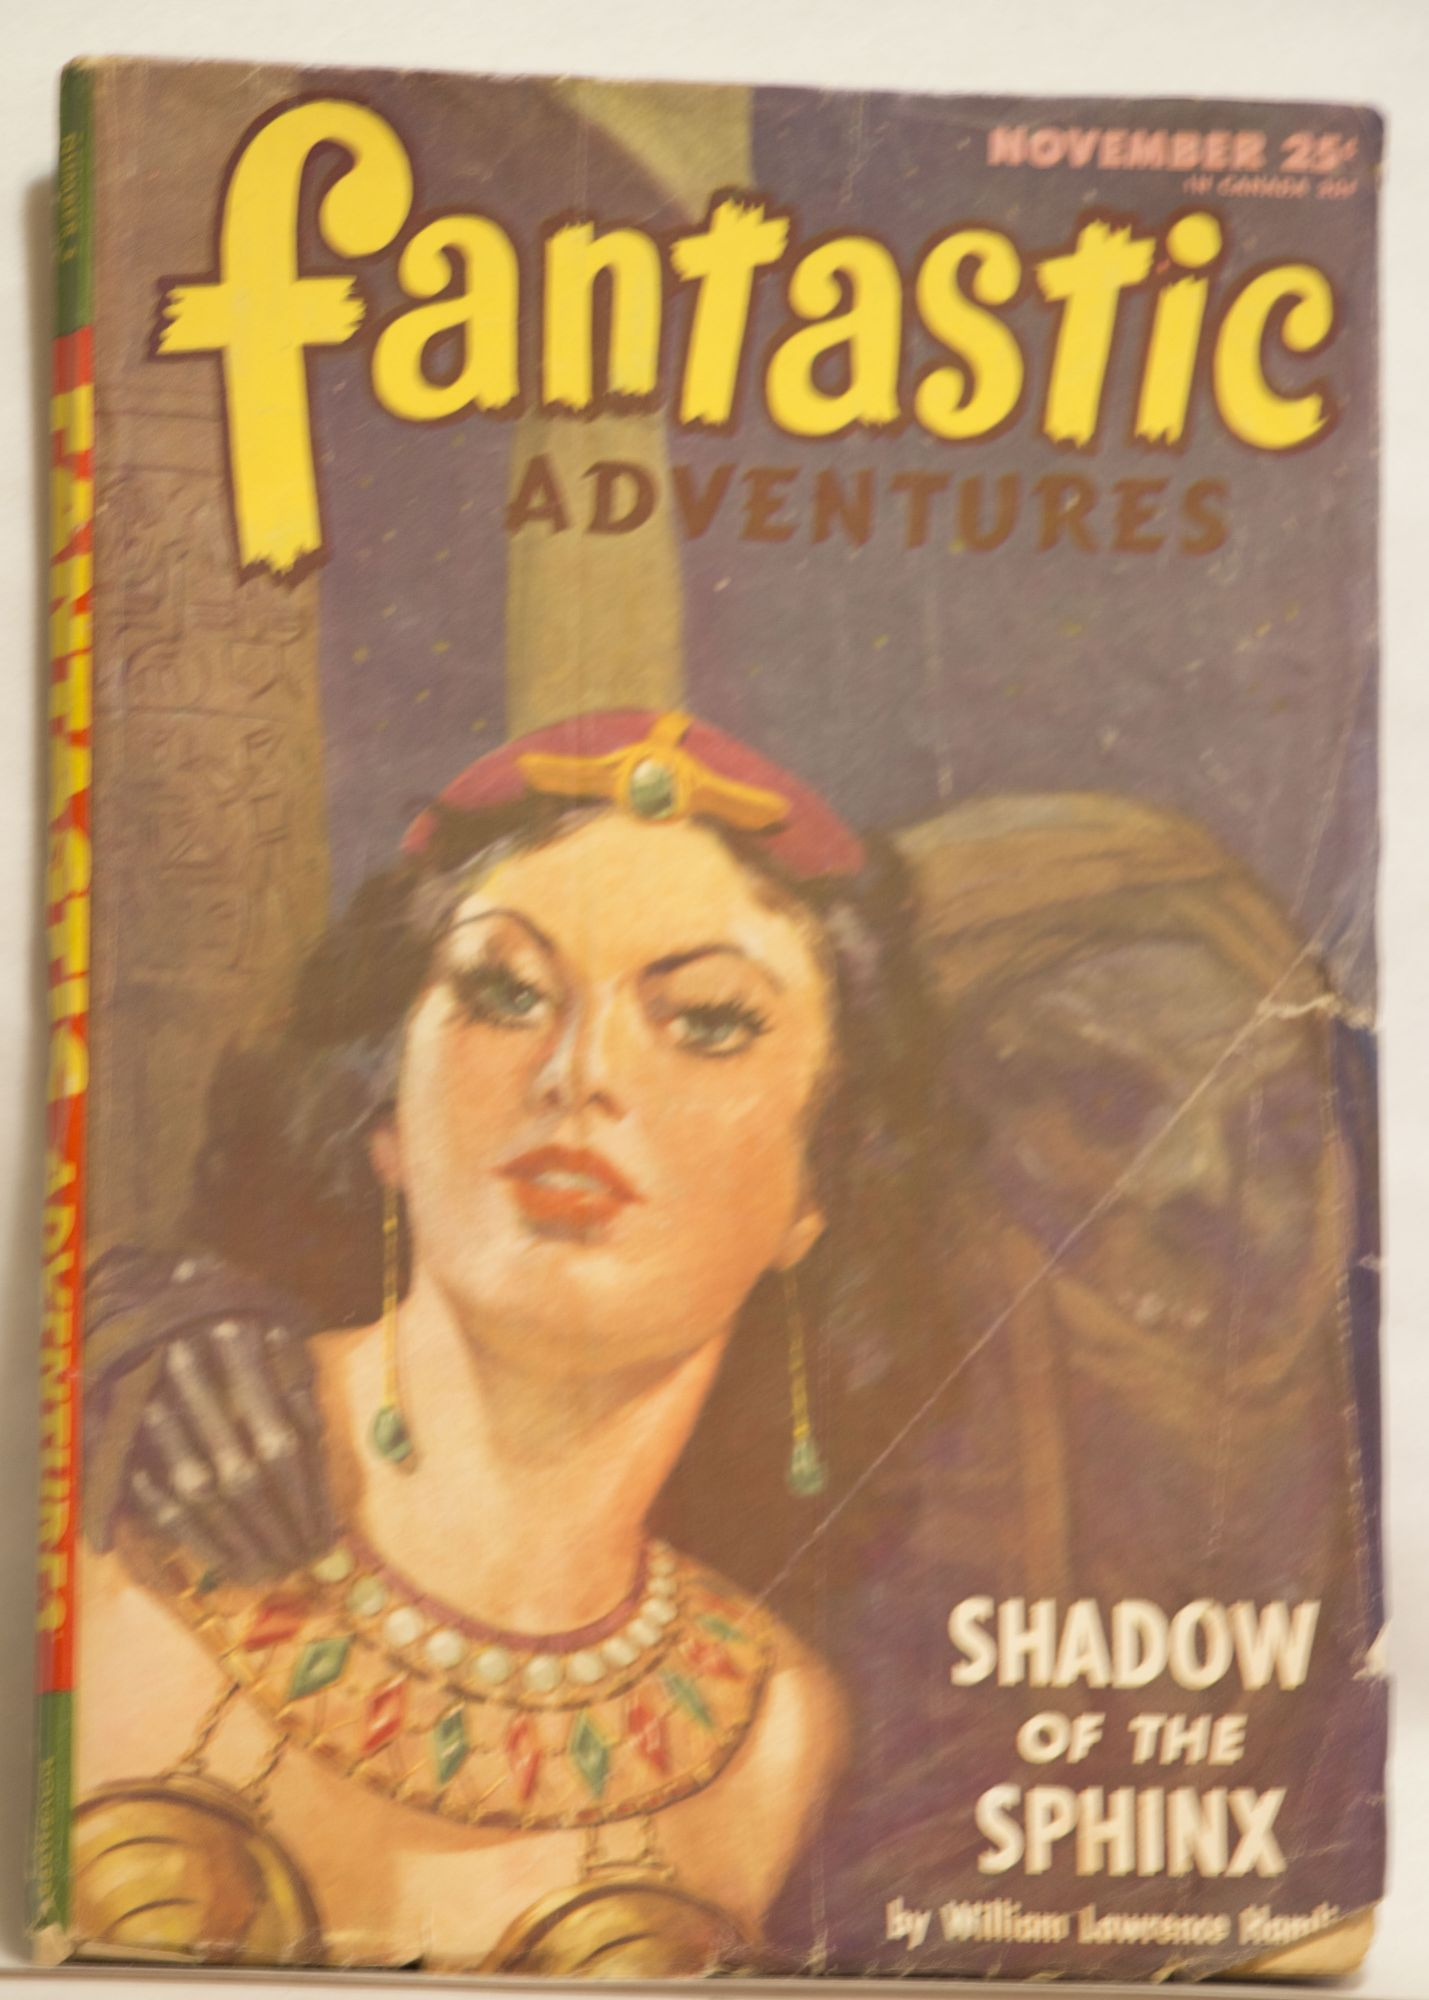 Fantastic Adventures- November 1946 - Volume 8 Number 5 25¢ Shadow of the Sphinx by William Lawrence Hamling